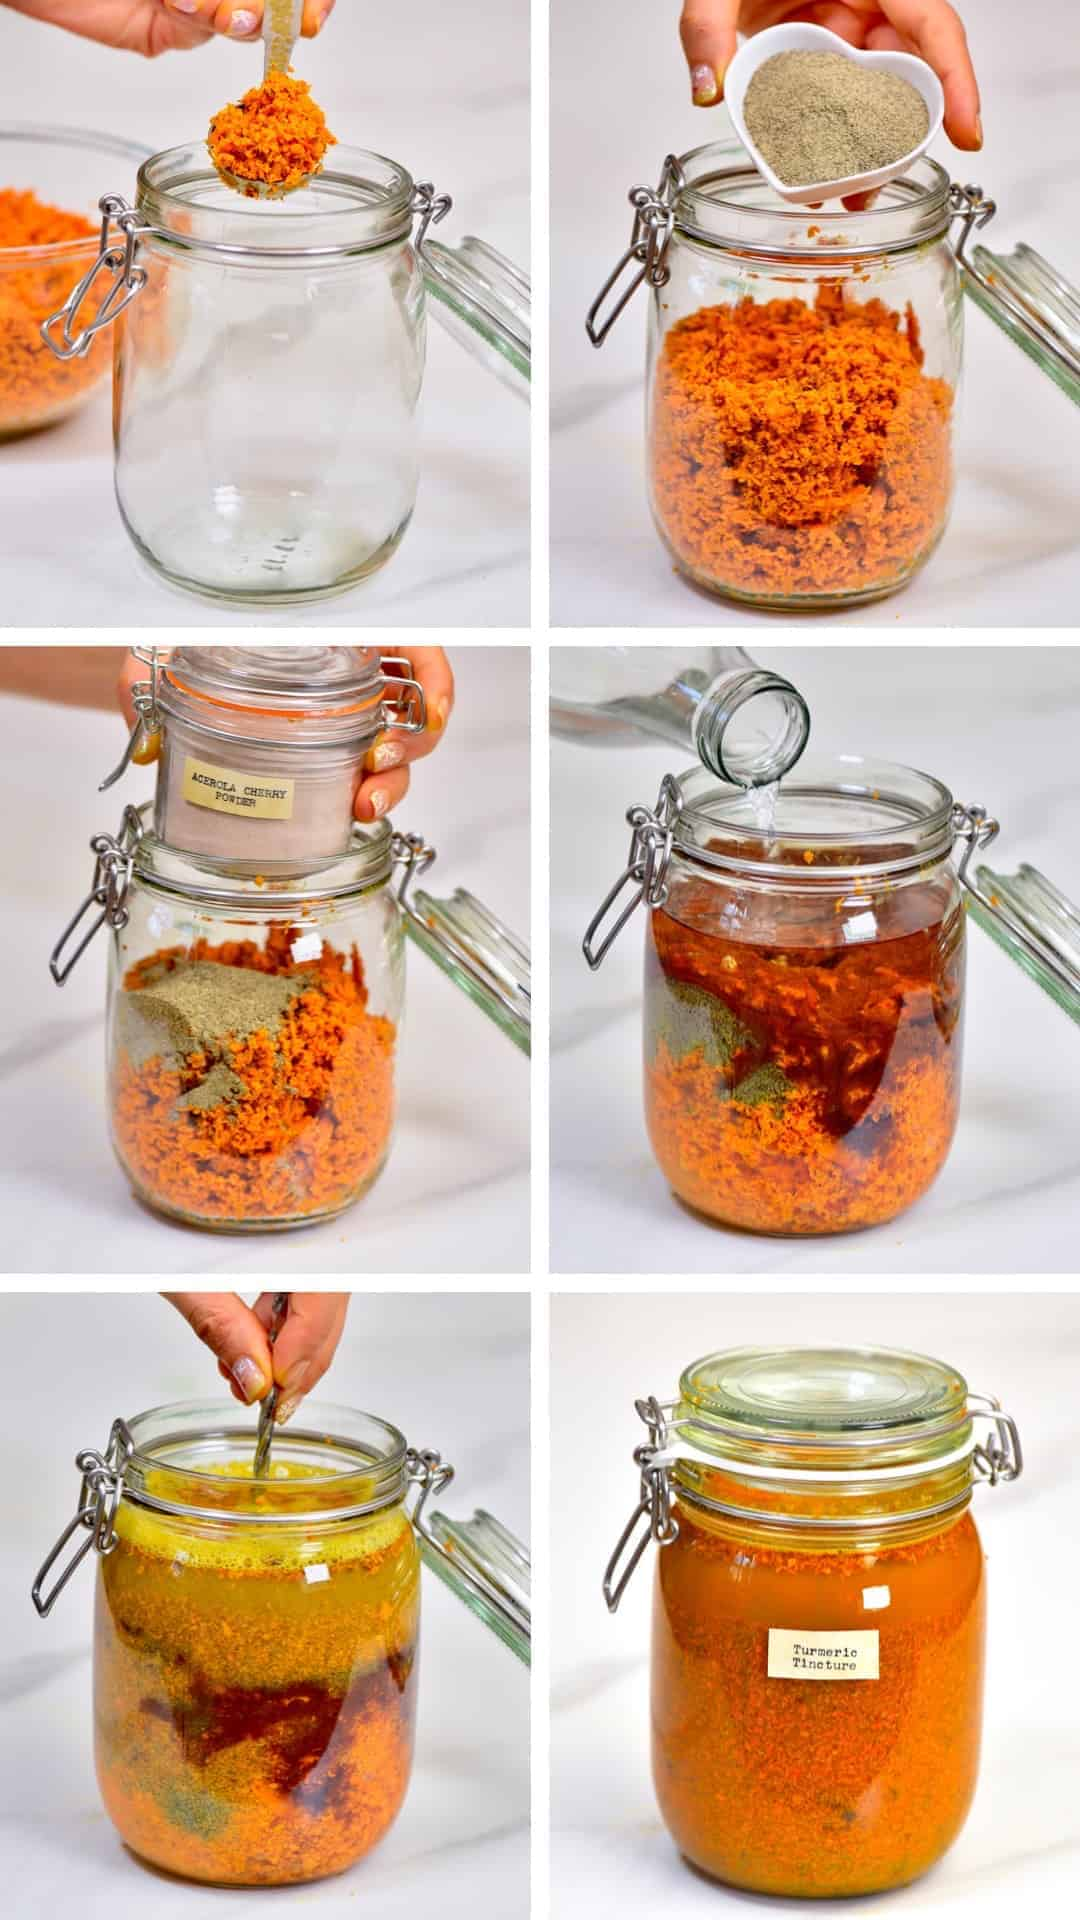 the process of making a homemade turmeric tincture. healthy turmeric natural medicine